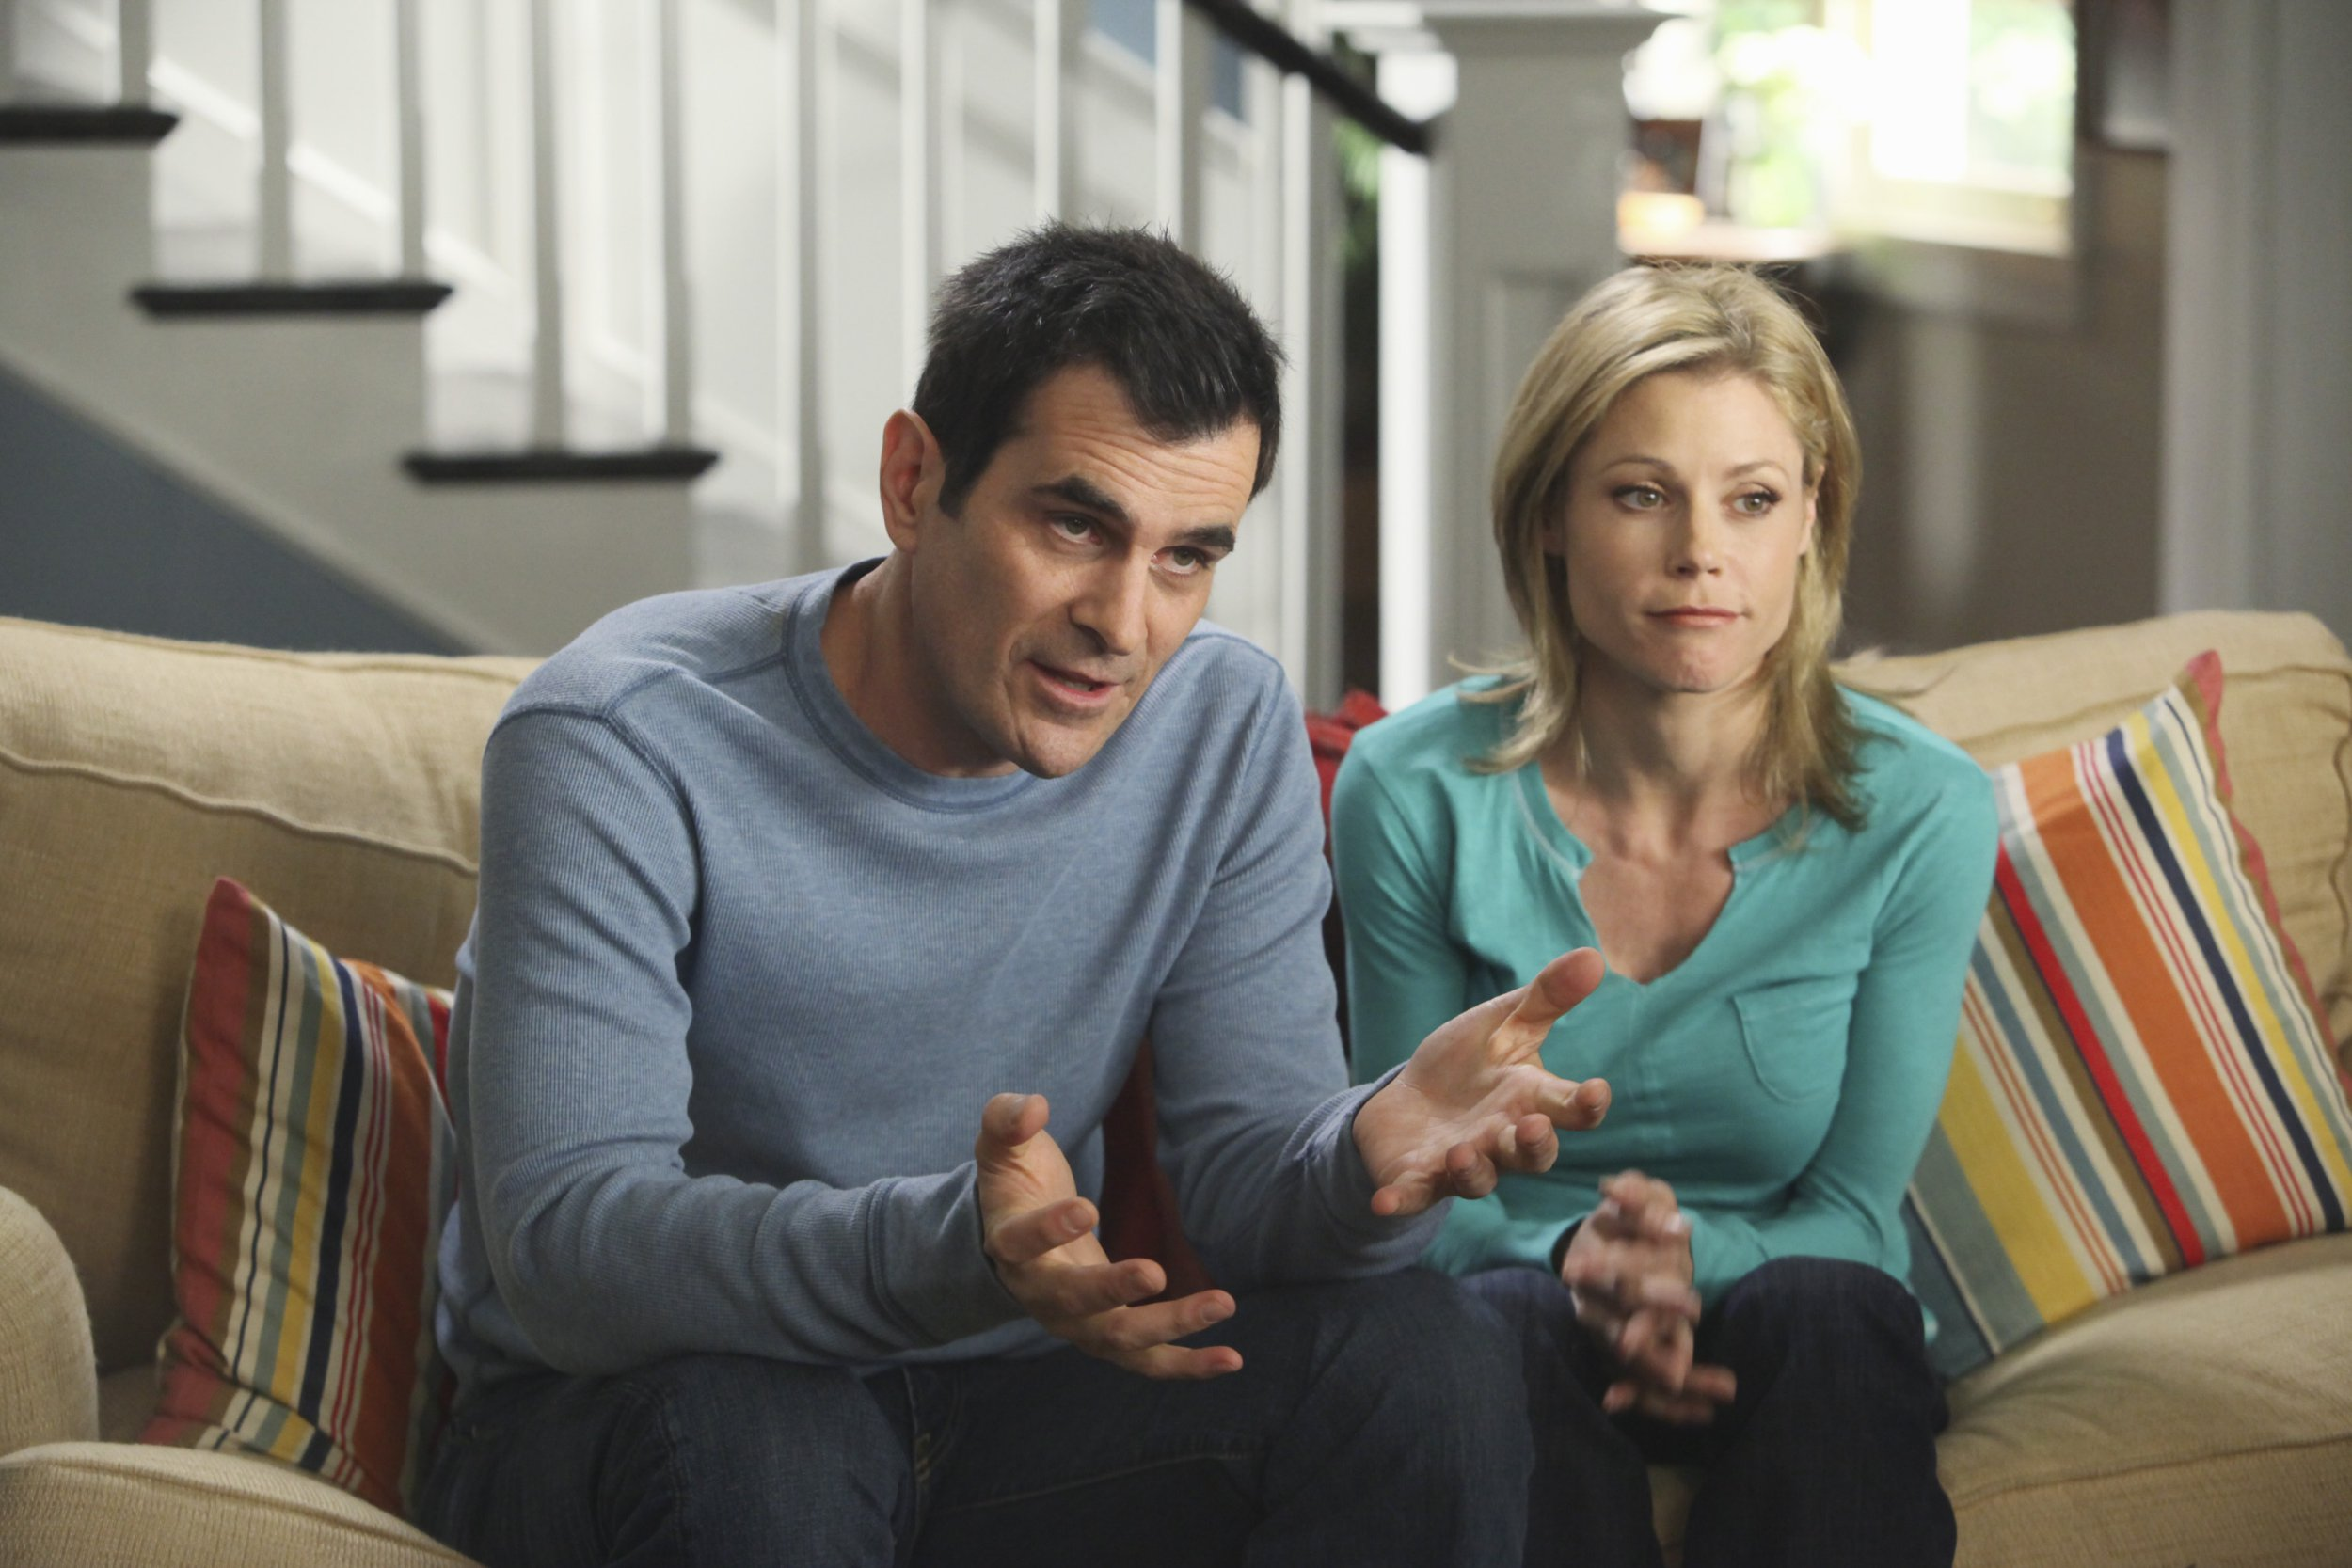 Modern Family viewers aren't too impressed by 'lame' death of 'beloved character'